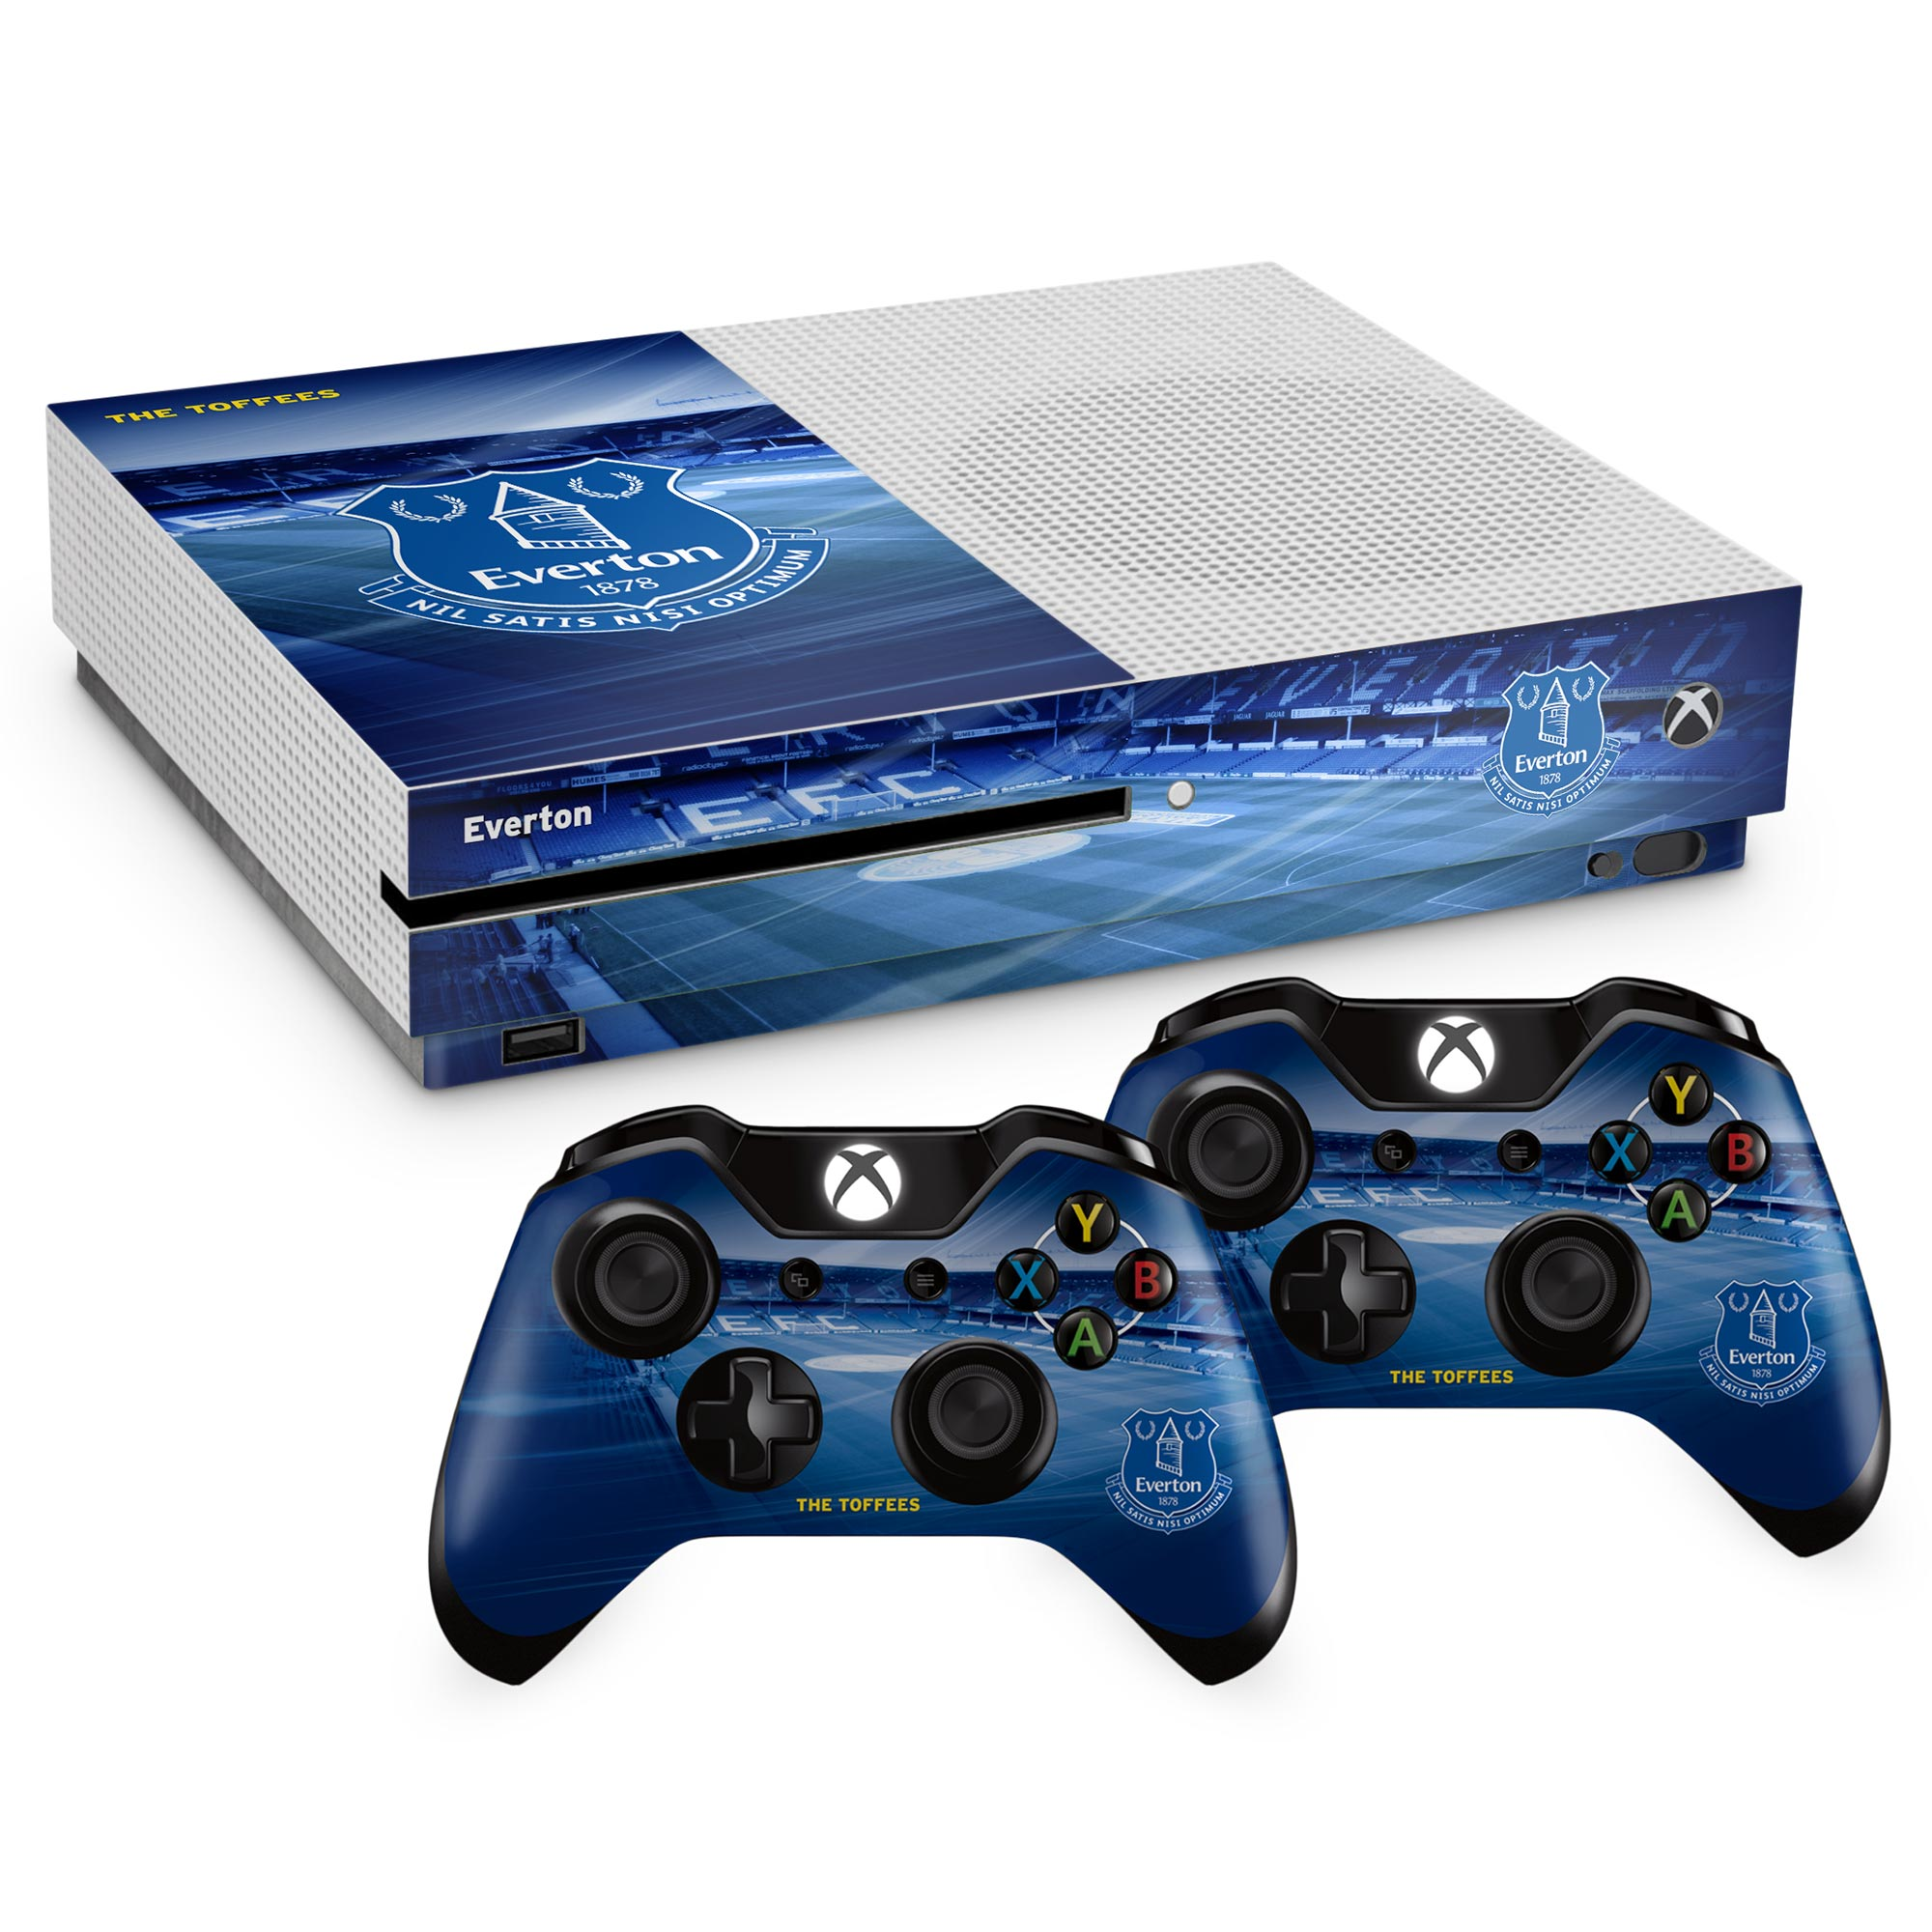 Everton PS4 Xbox One S Controller and Console Skin Set